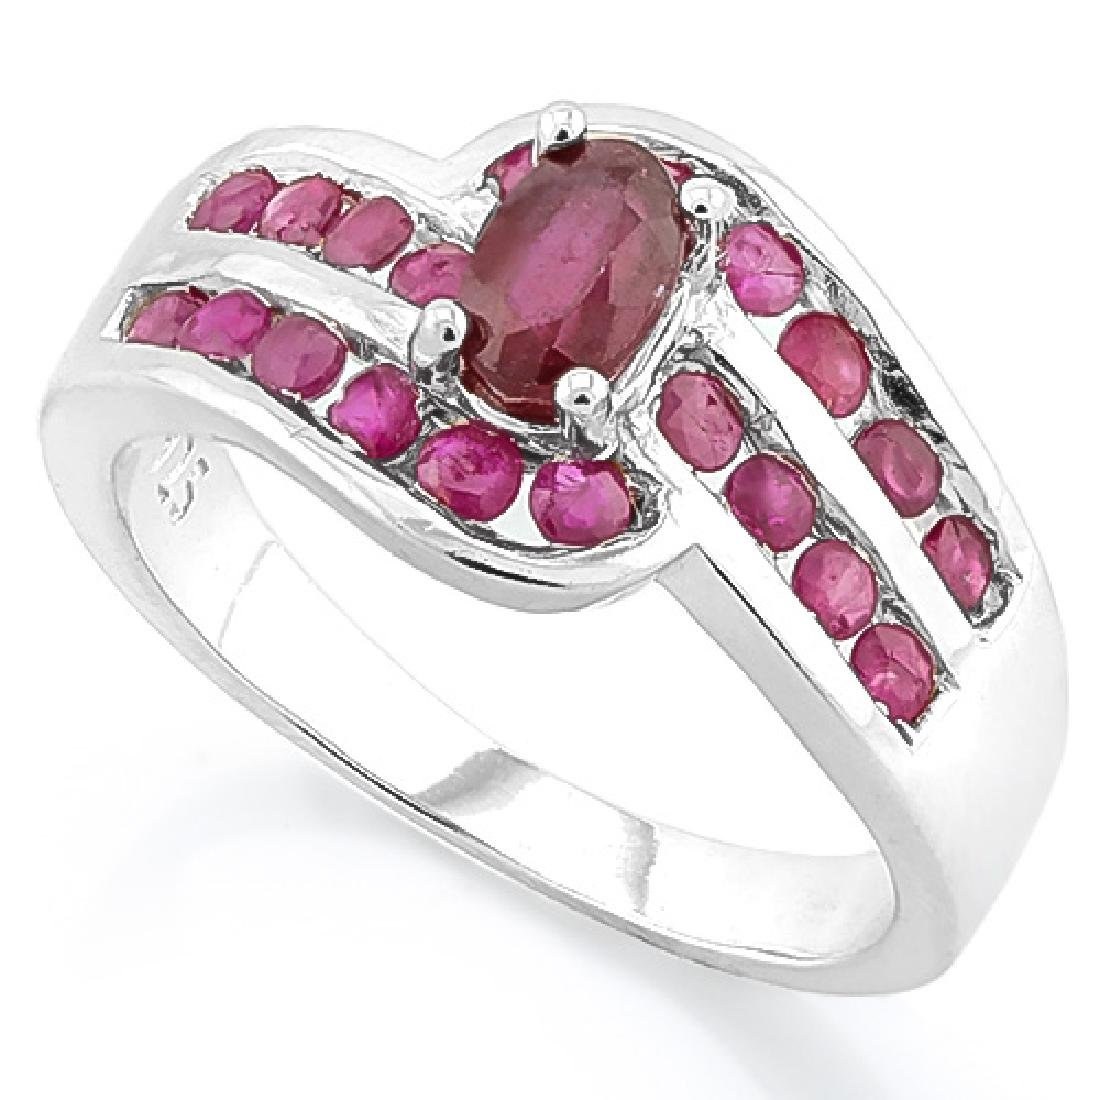 STUNNING AFRICAN RUBY ART DECO STERLING RING